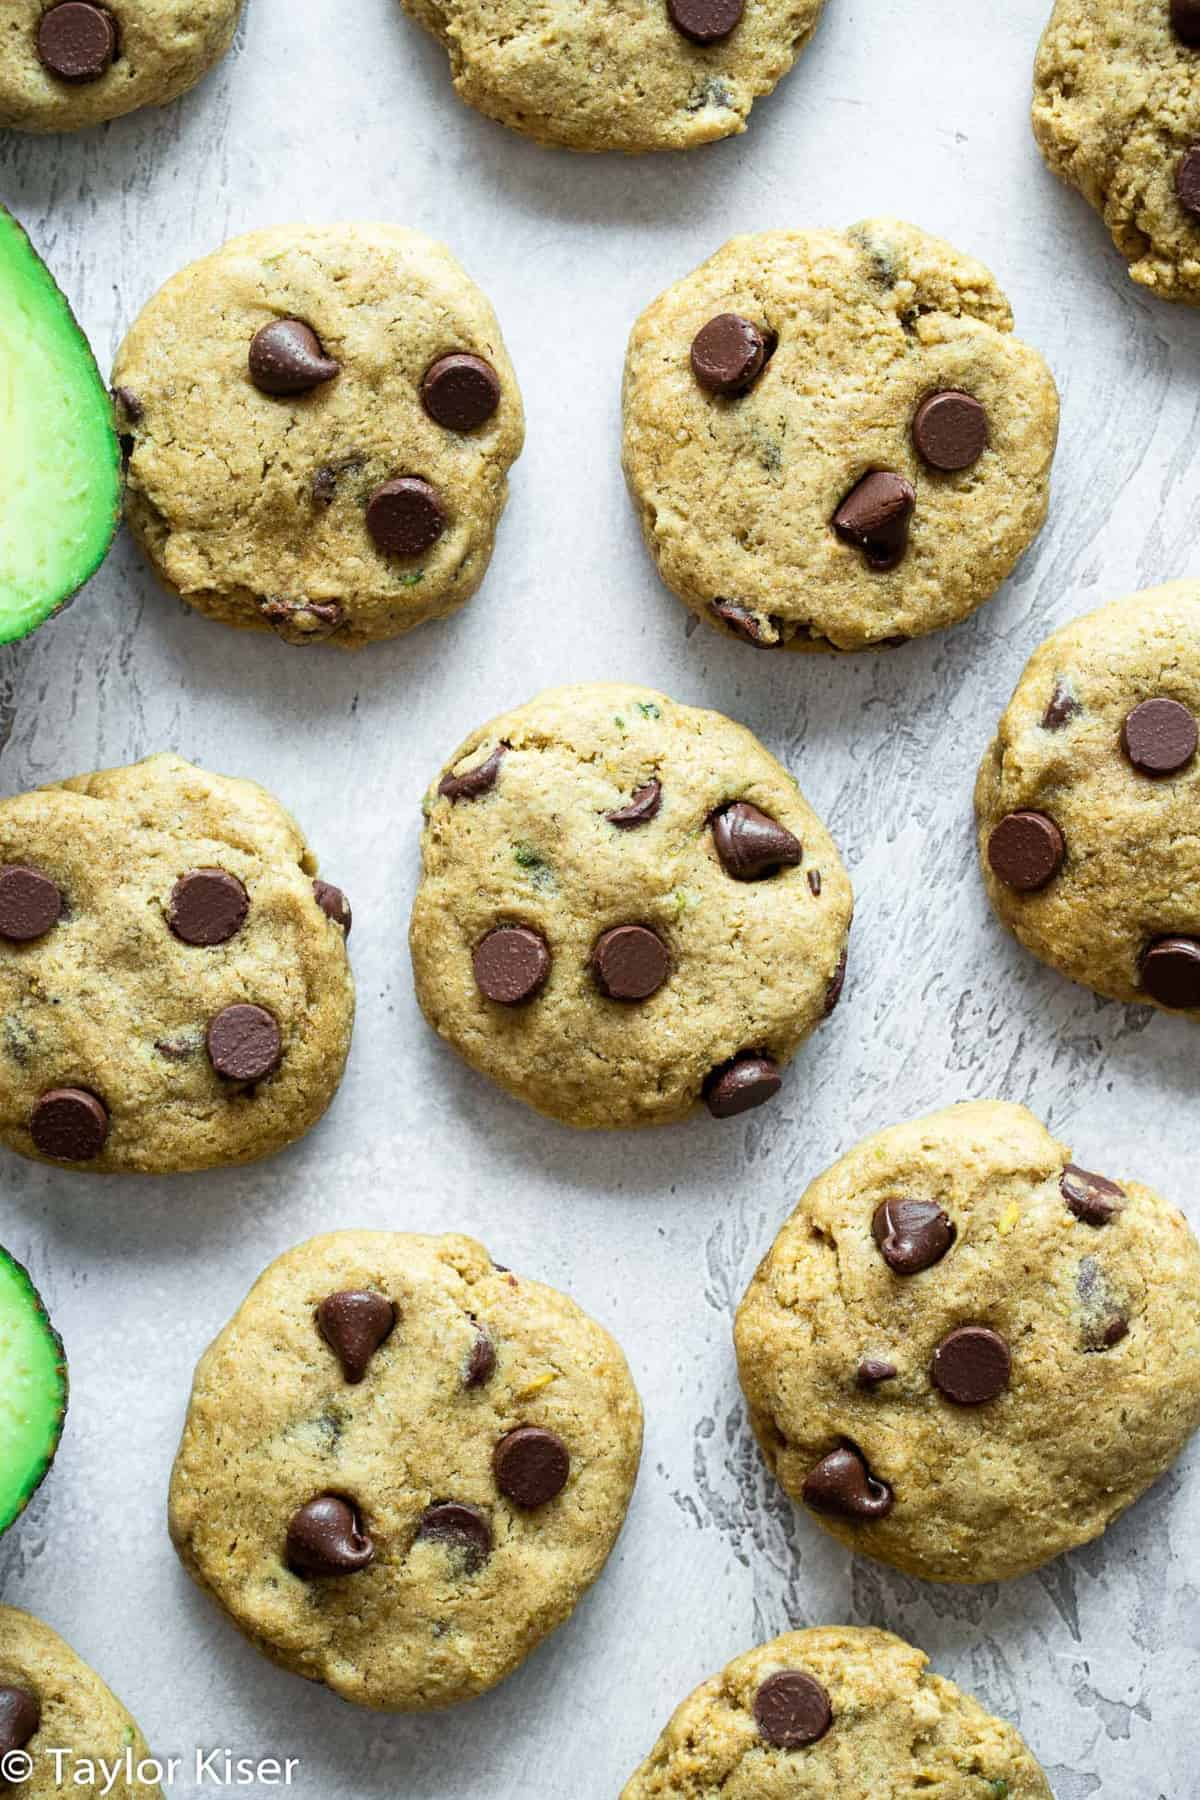 a bunch of Healthy Chocolate Chip Cookies next to raw avocados